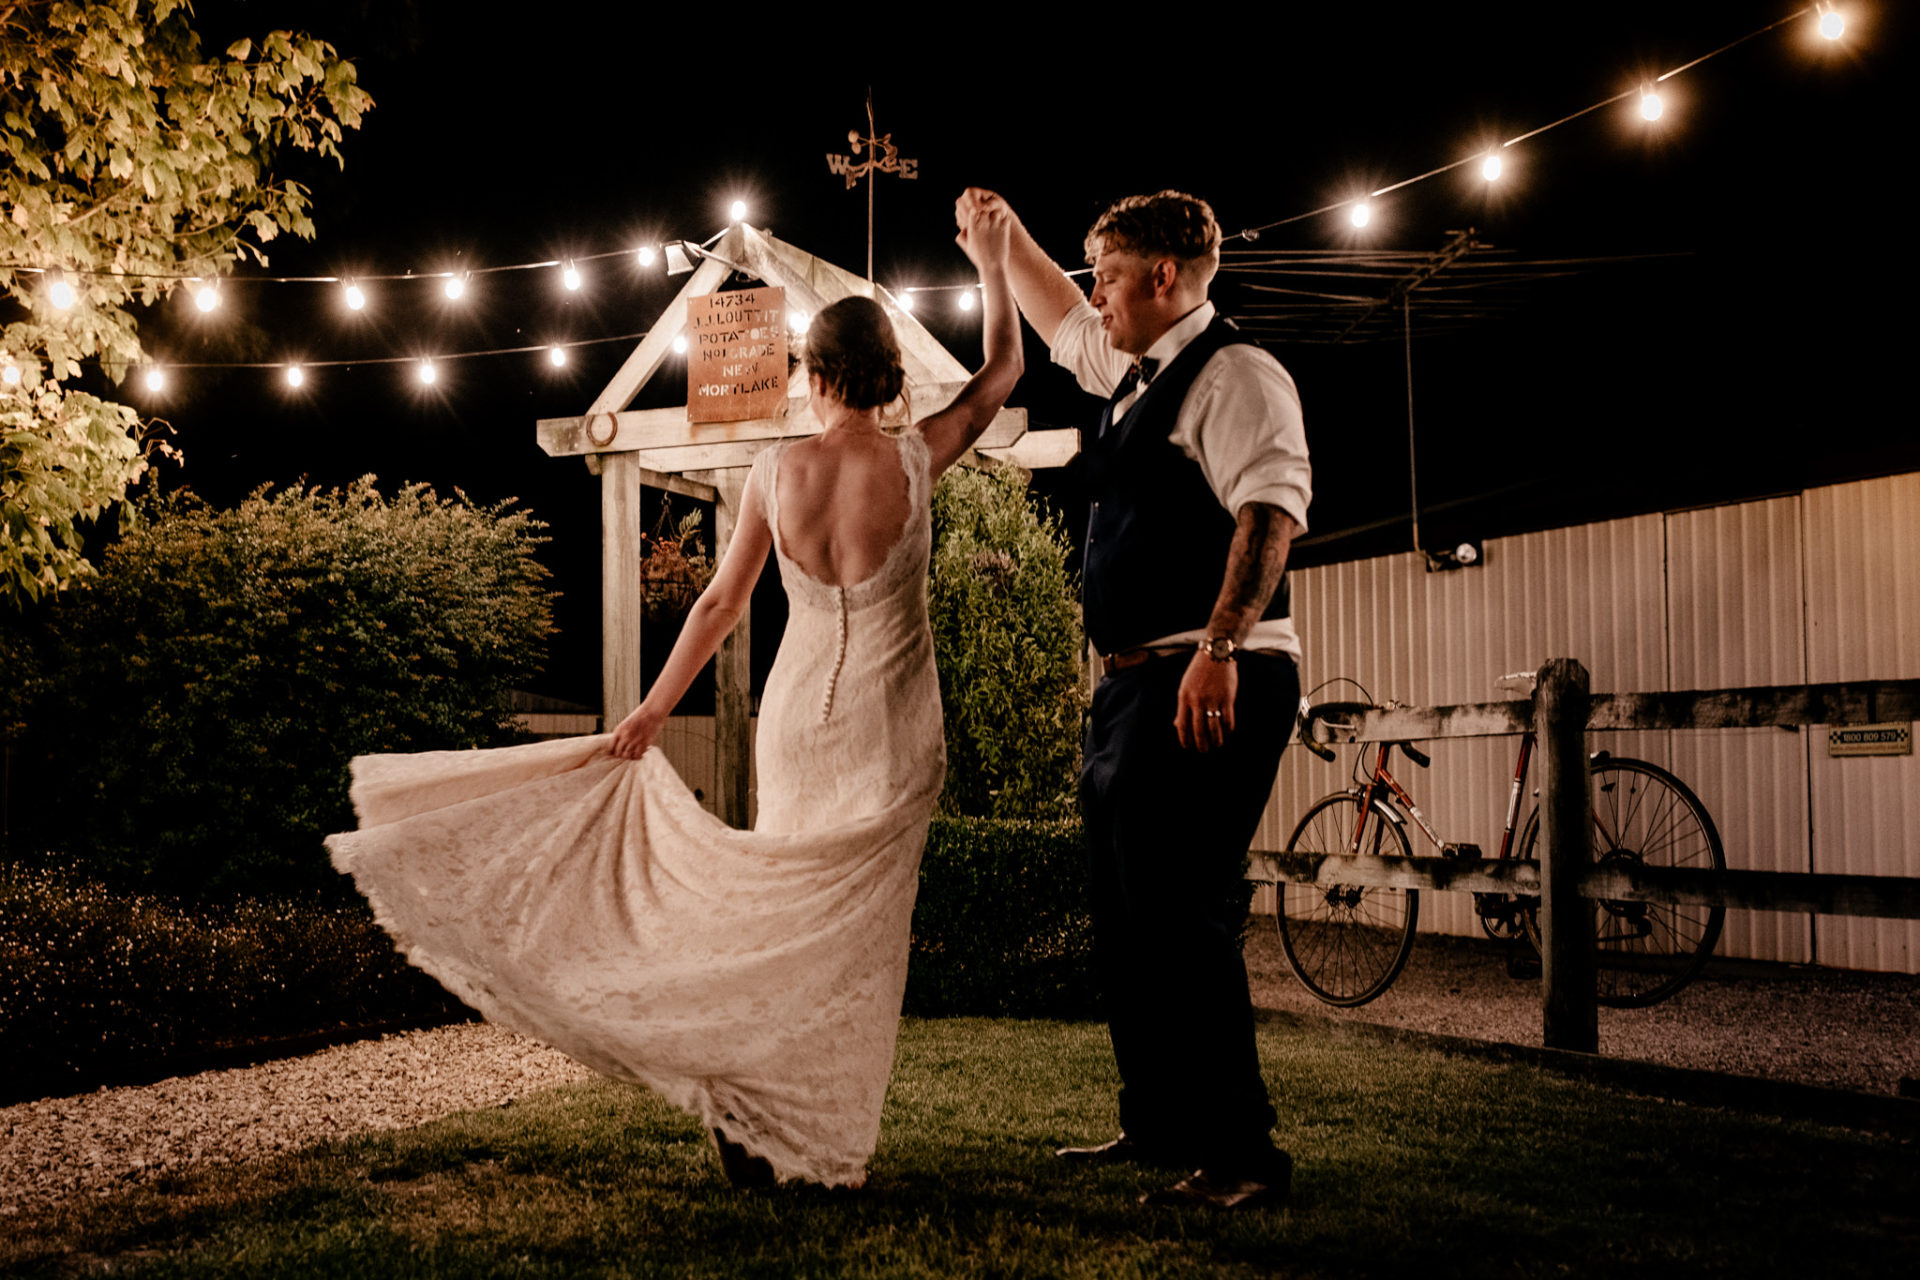 backyard wedding melbourne-trend 2019-garden wedding at home-fairy lights-bride groom portrait-night time-first dance-outdoor